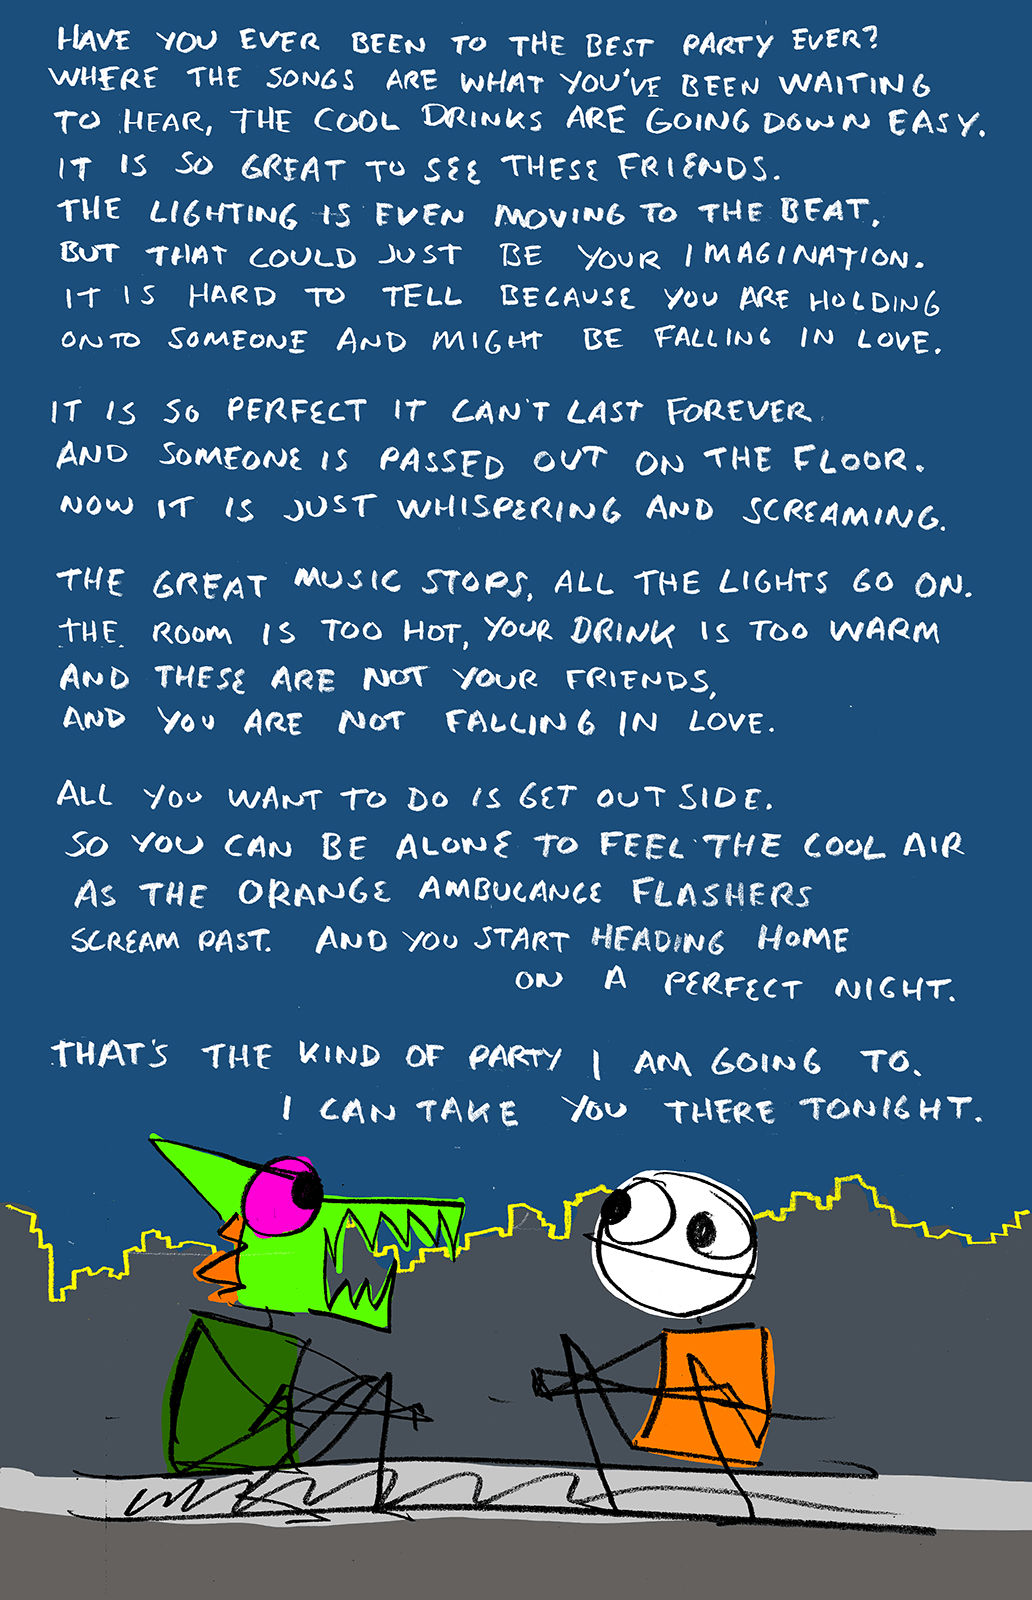 explodingdog:  The best party.  My nights out summed up well.